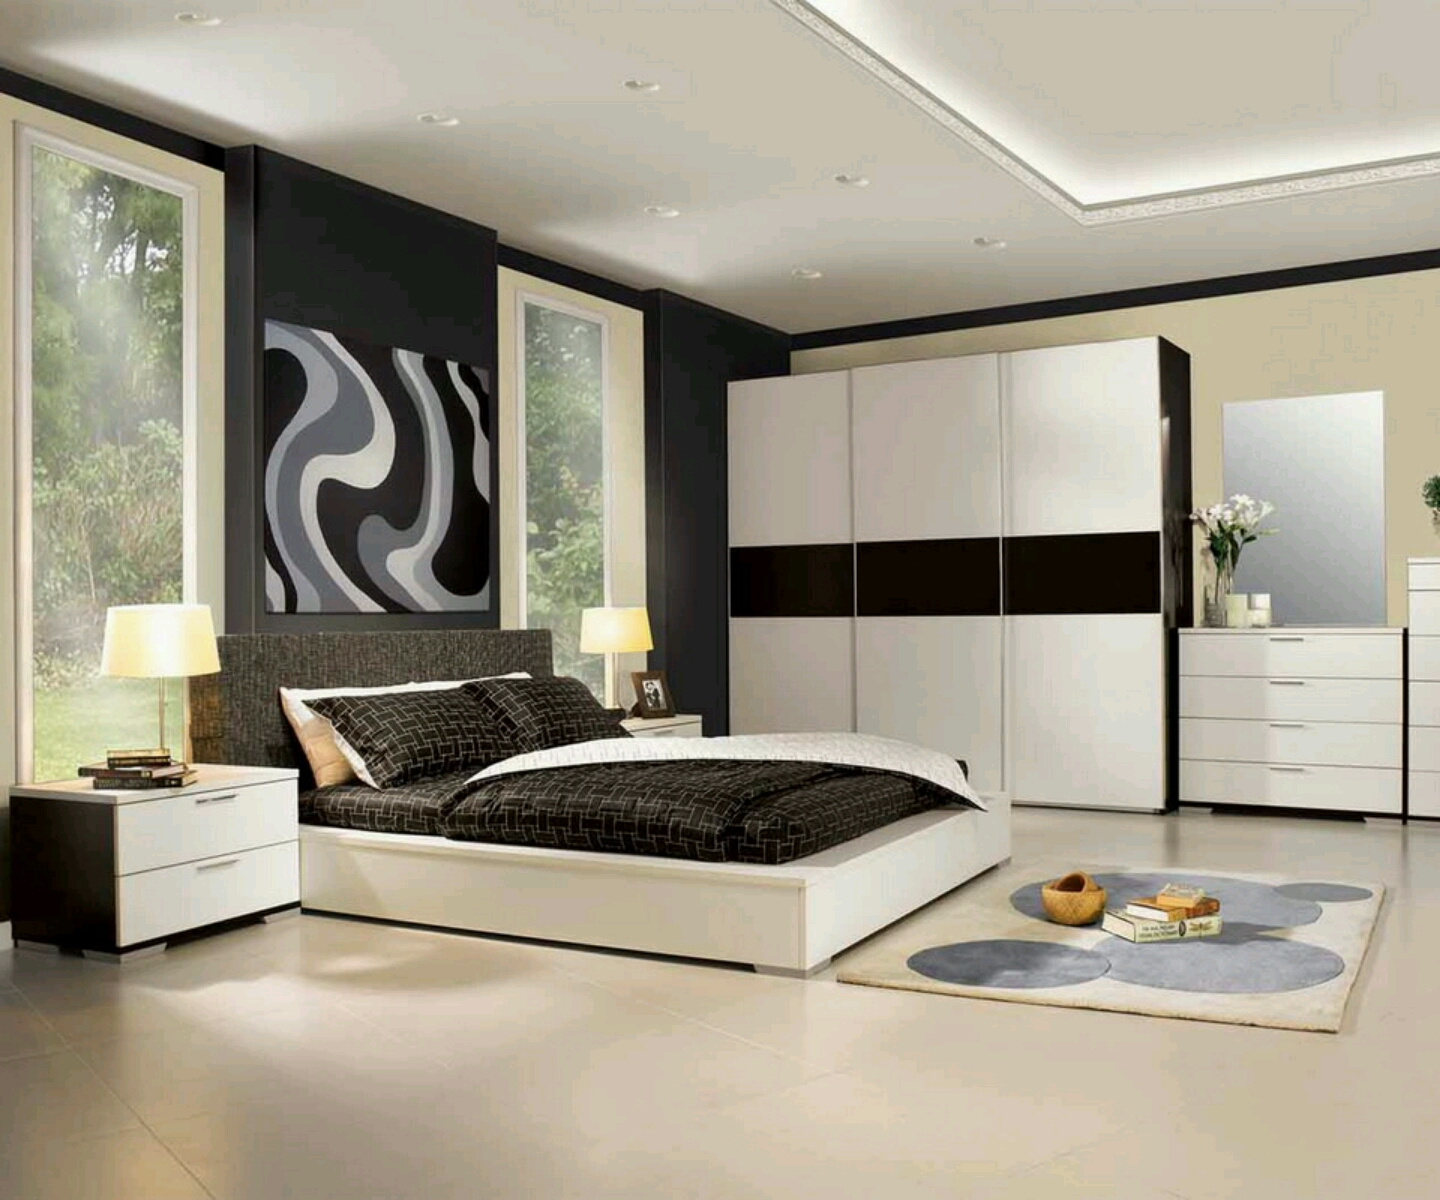 furniture ideas in bedroom photo - 3